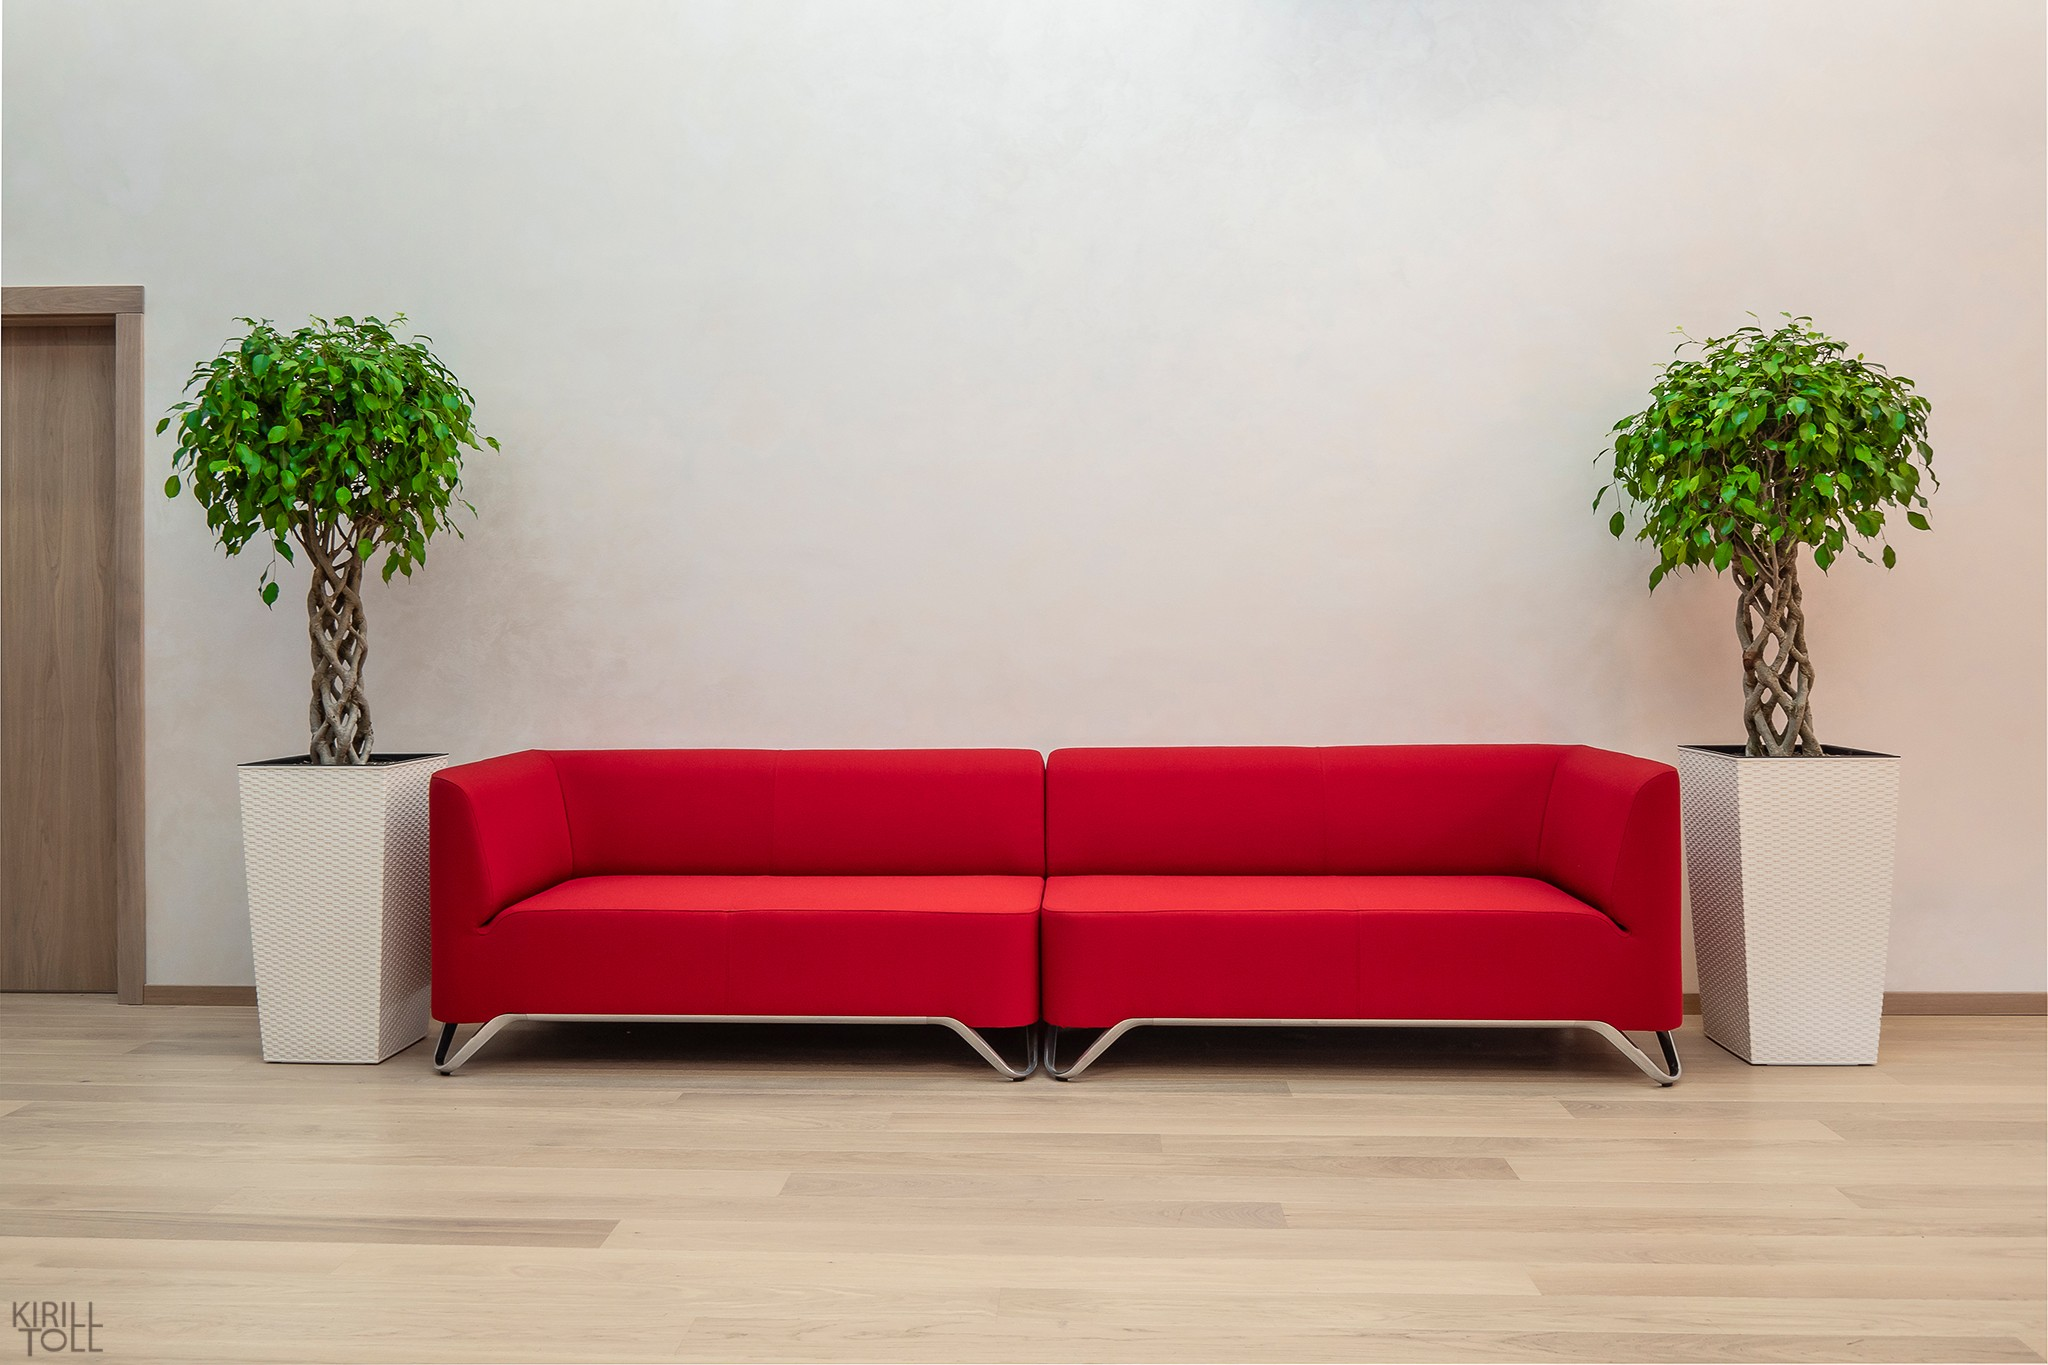 Furniture in the interior of the office. Professional photographer Kirill Toll